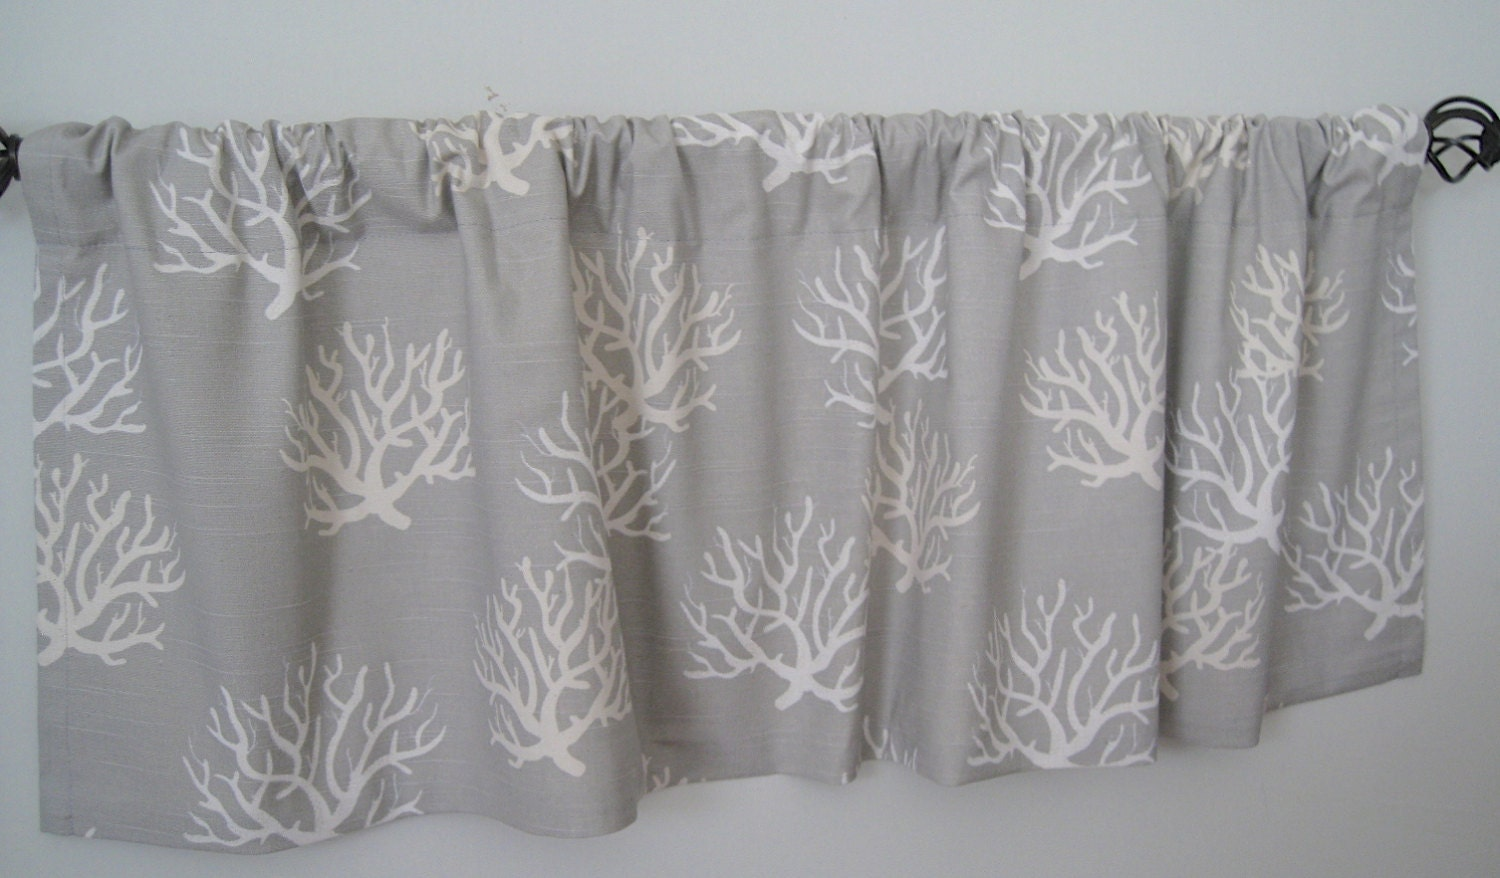 52x16 Valance. Isadella Slub/Coastal And Natural Valance